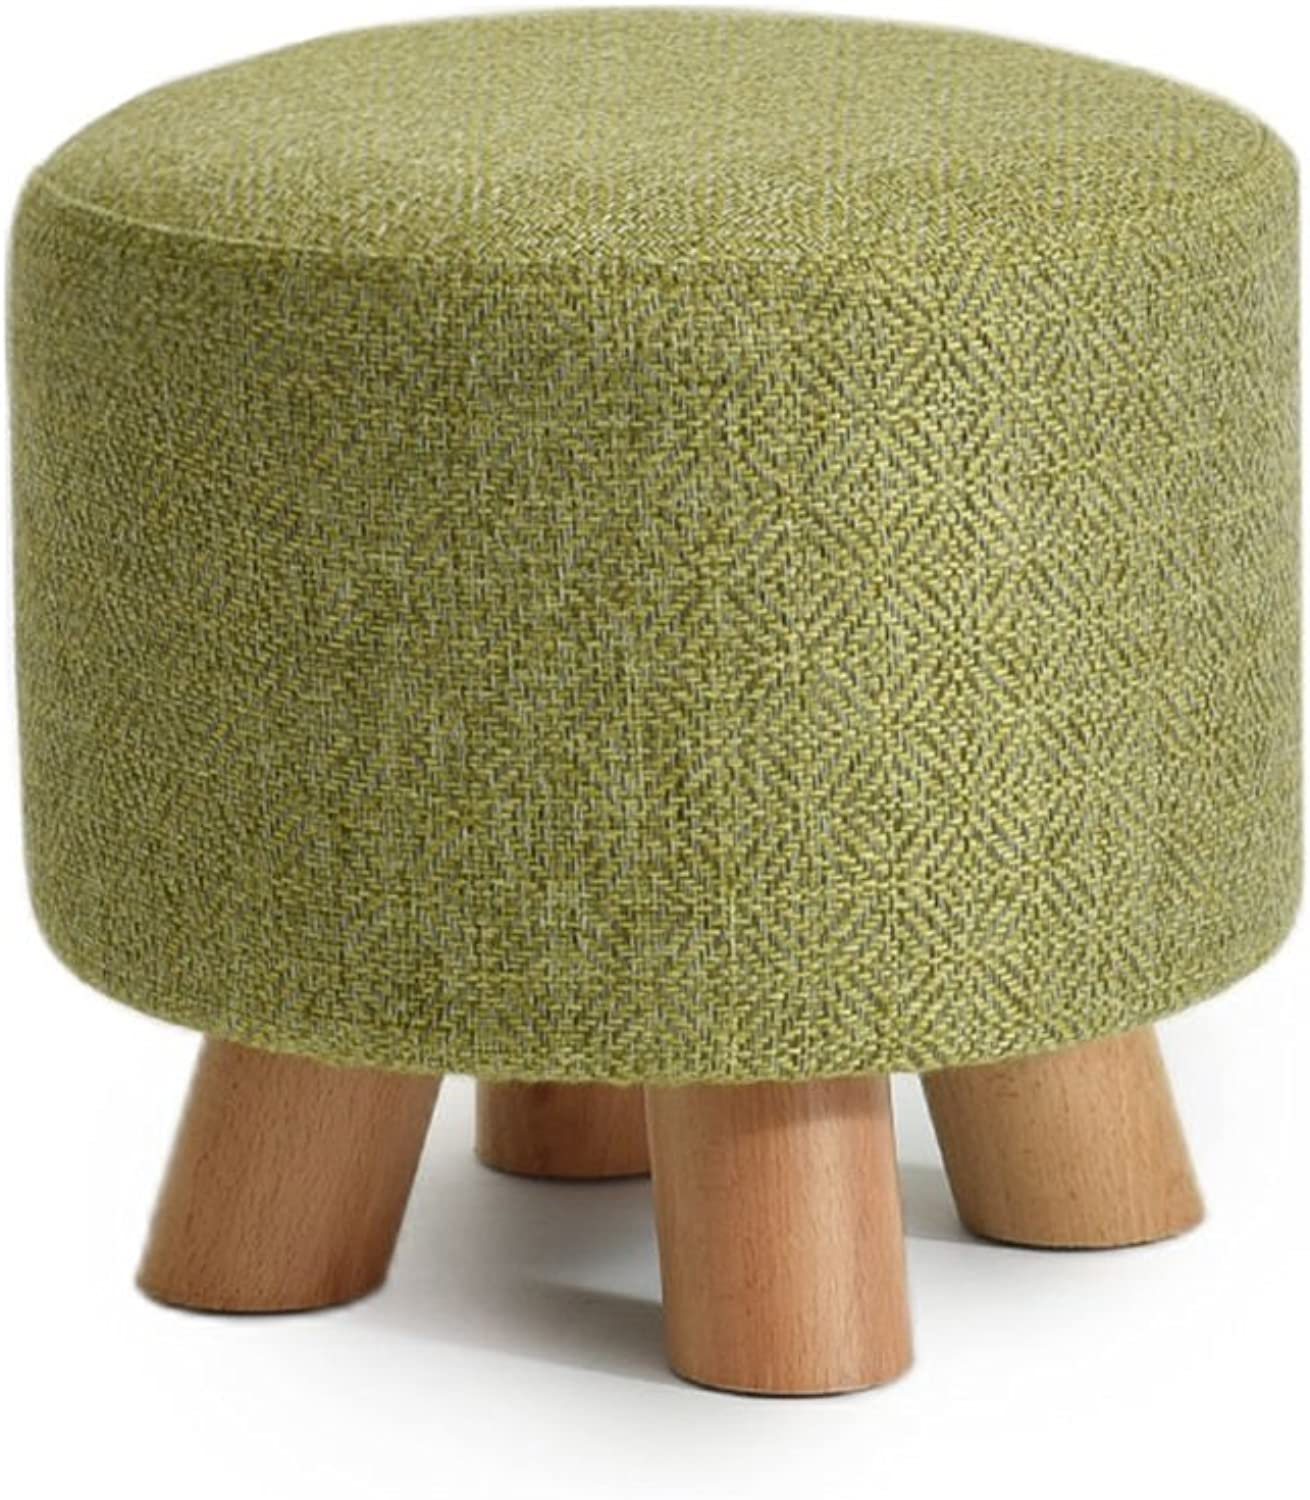 Fashion Solid Wood shoes Stool Round Upholstered Footstool Sofa Low Stool Footrest Small Seat Foot Rest Chair Green (color    1)